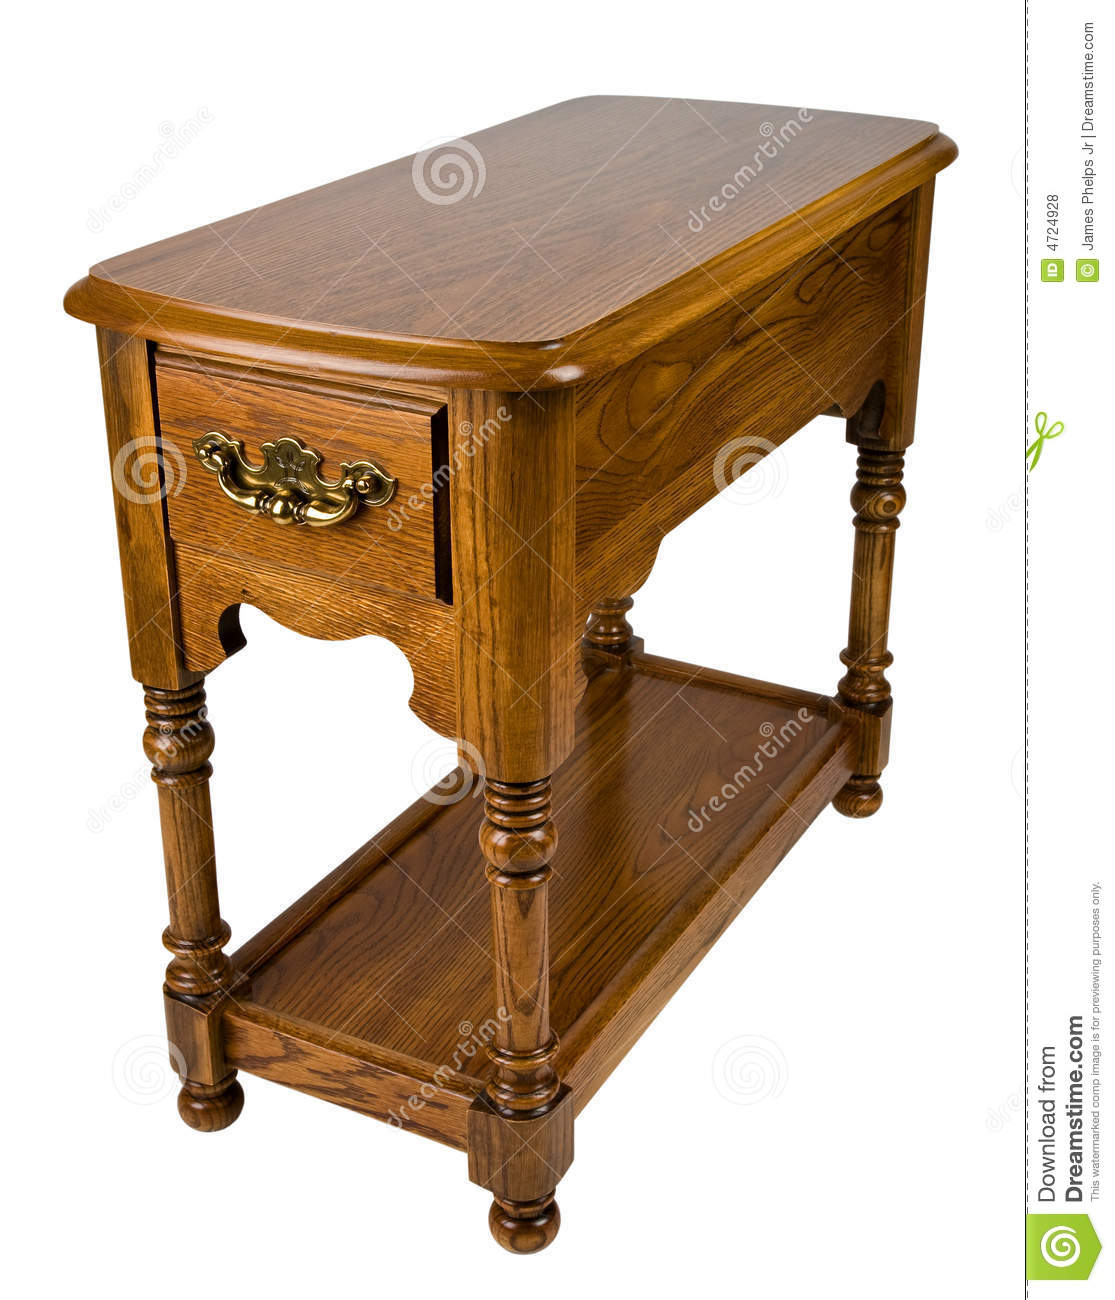 Wonderful image of Oak Chair Side End Table Royalty Free Stock Photos Image: 4724928 with #3C2008 color and 1115x1300 pixels